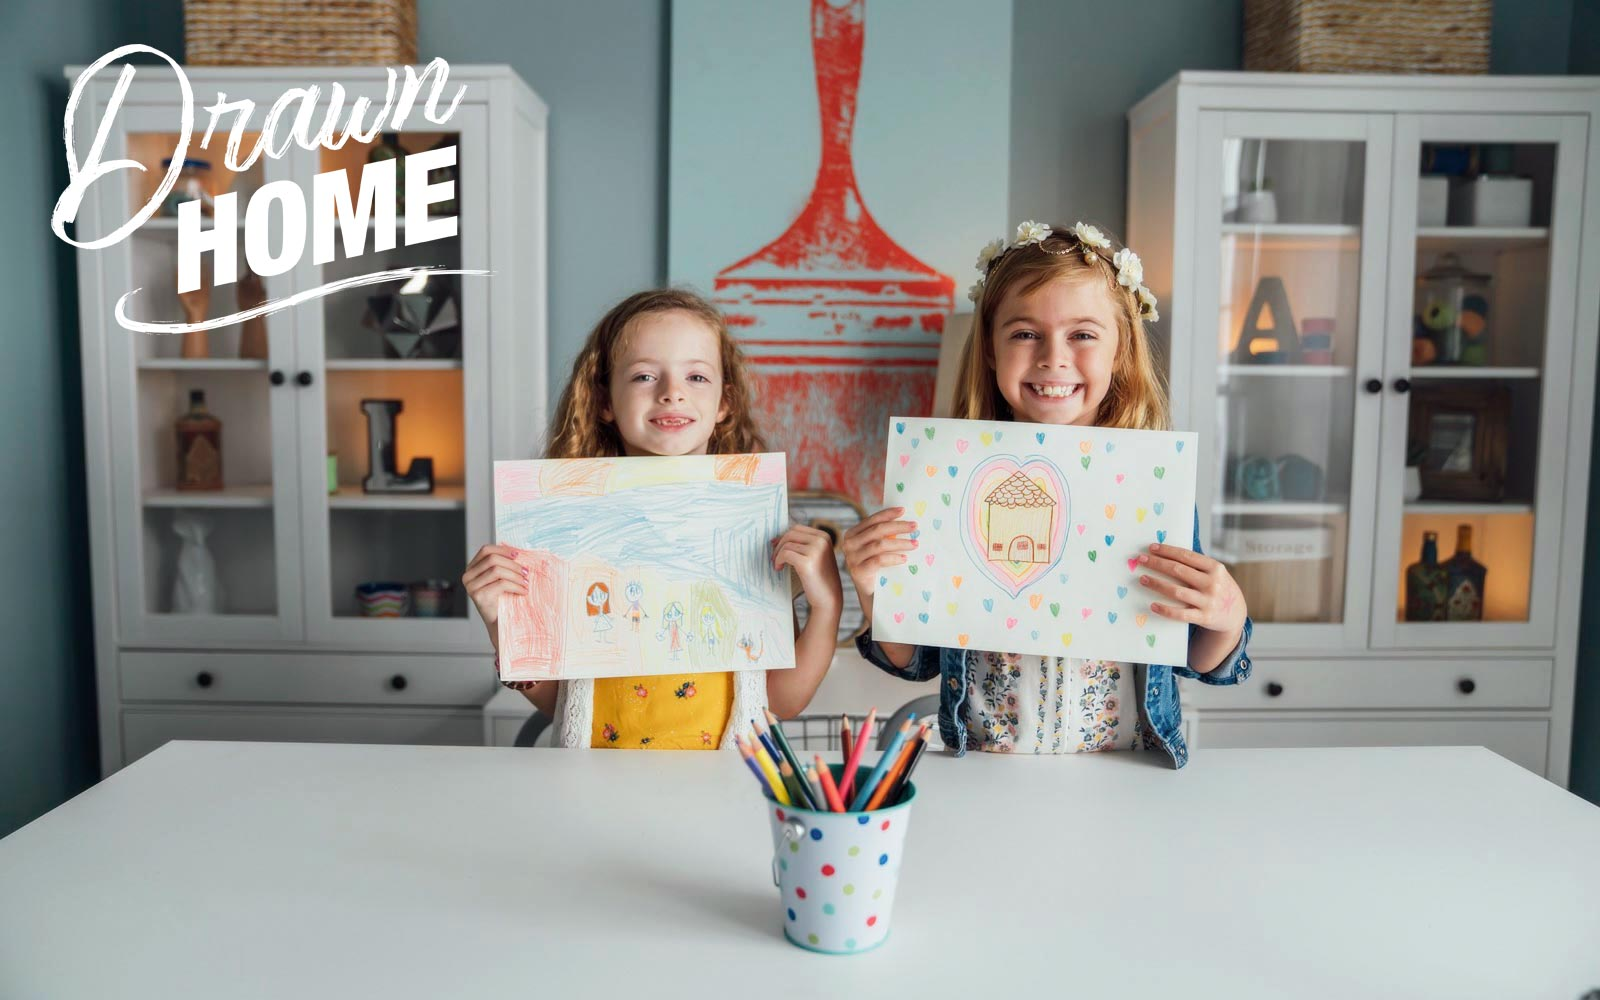 Two girls show their drawings | Brookfield Residential Drawn Home